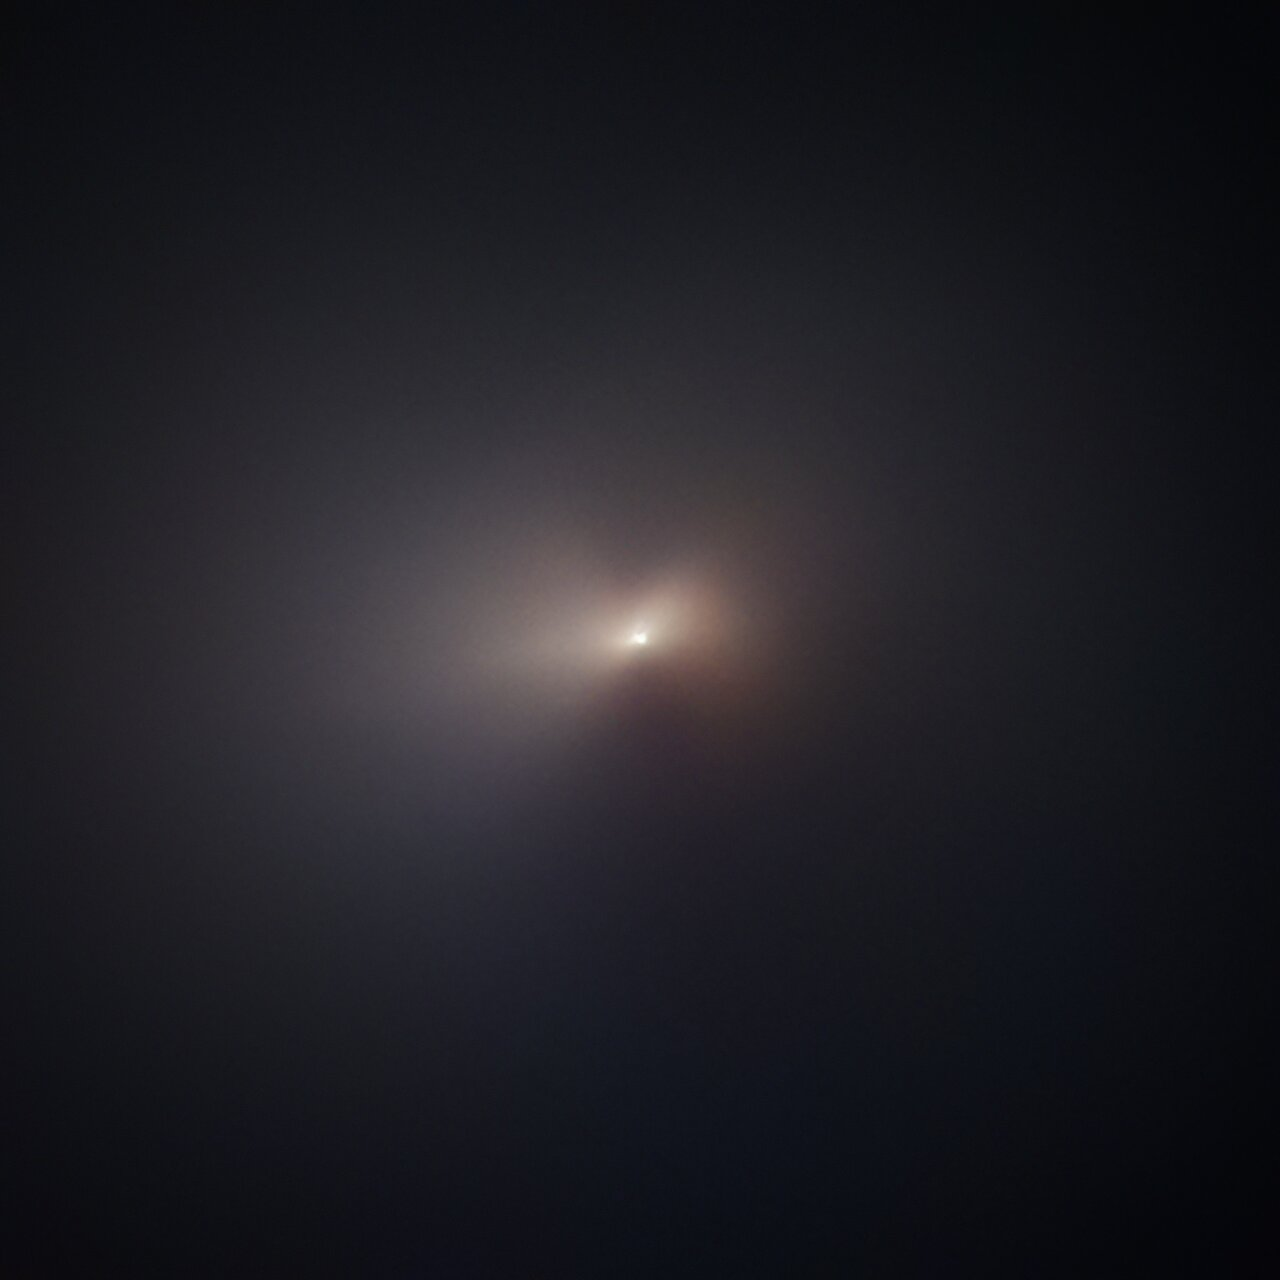 Hubble Captures Comet NEOWISE